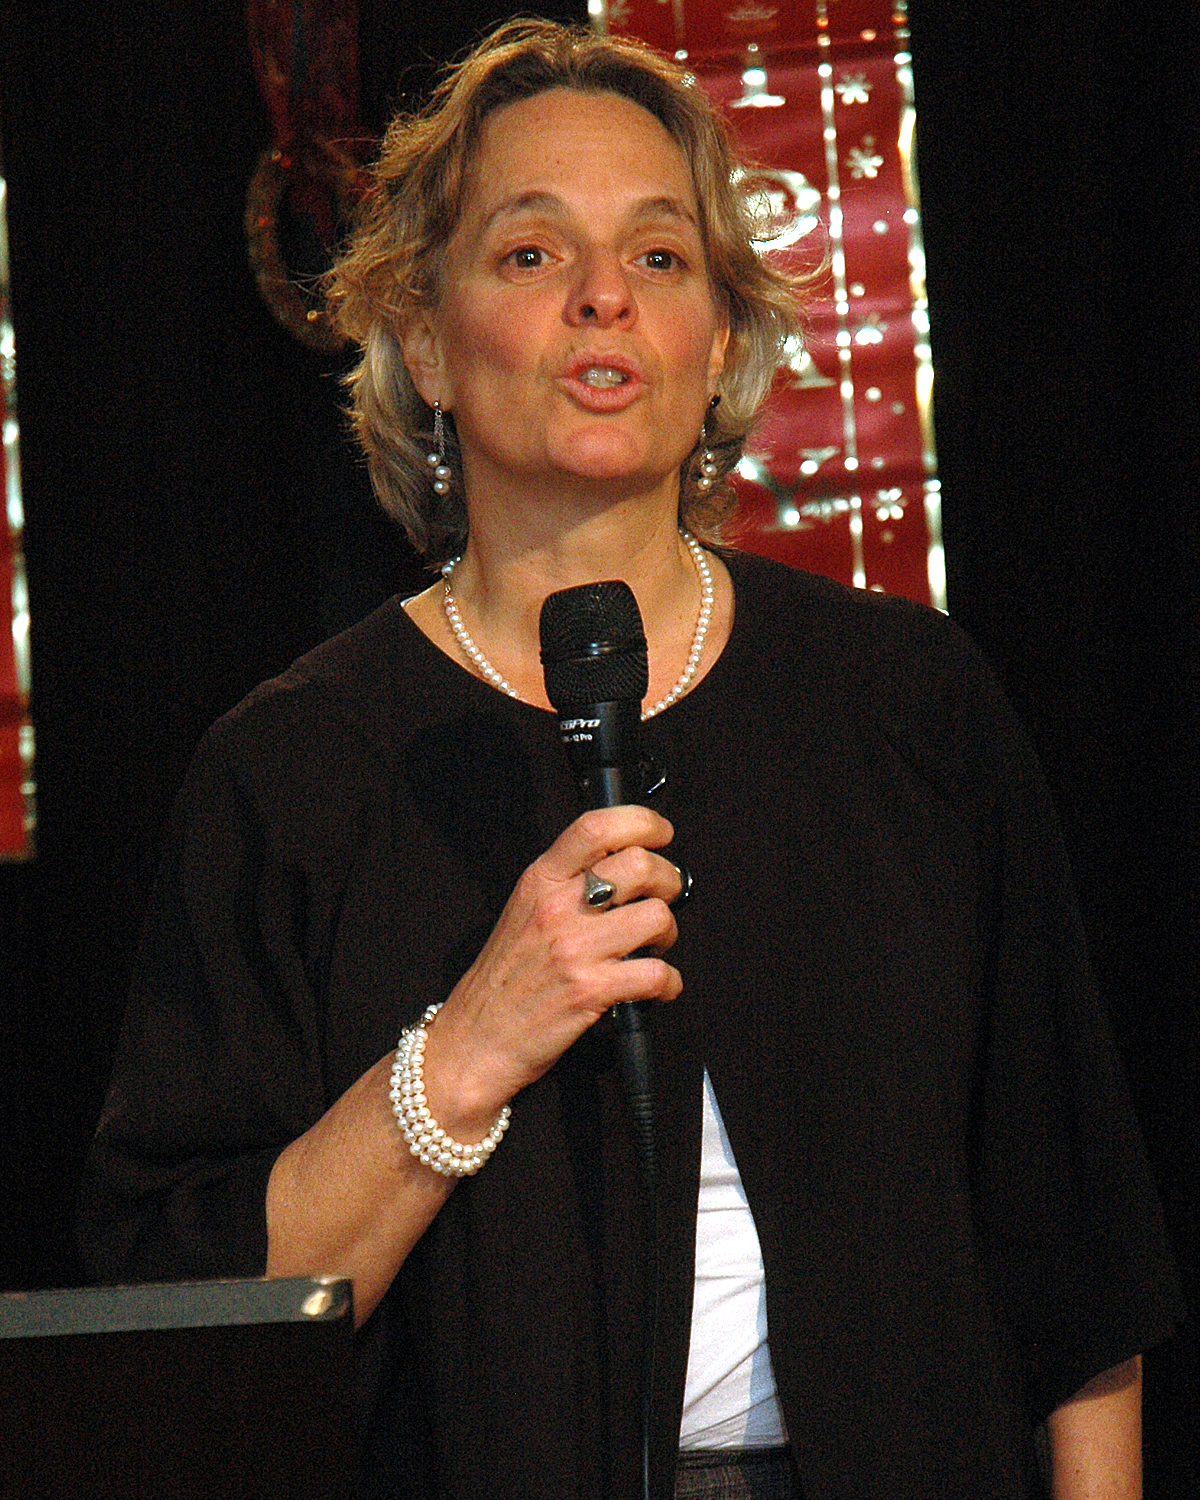 Sharen Duke during the testimonial to Brenda Starks-Ross